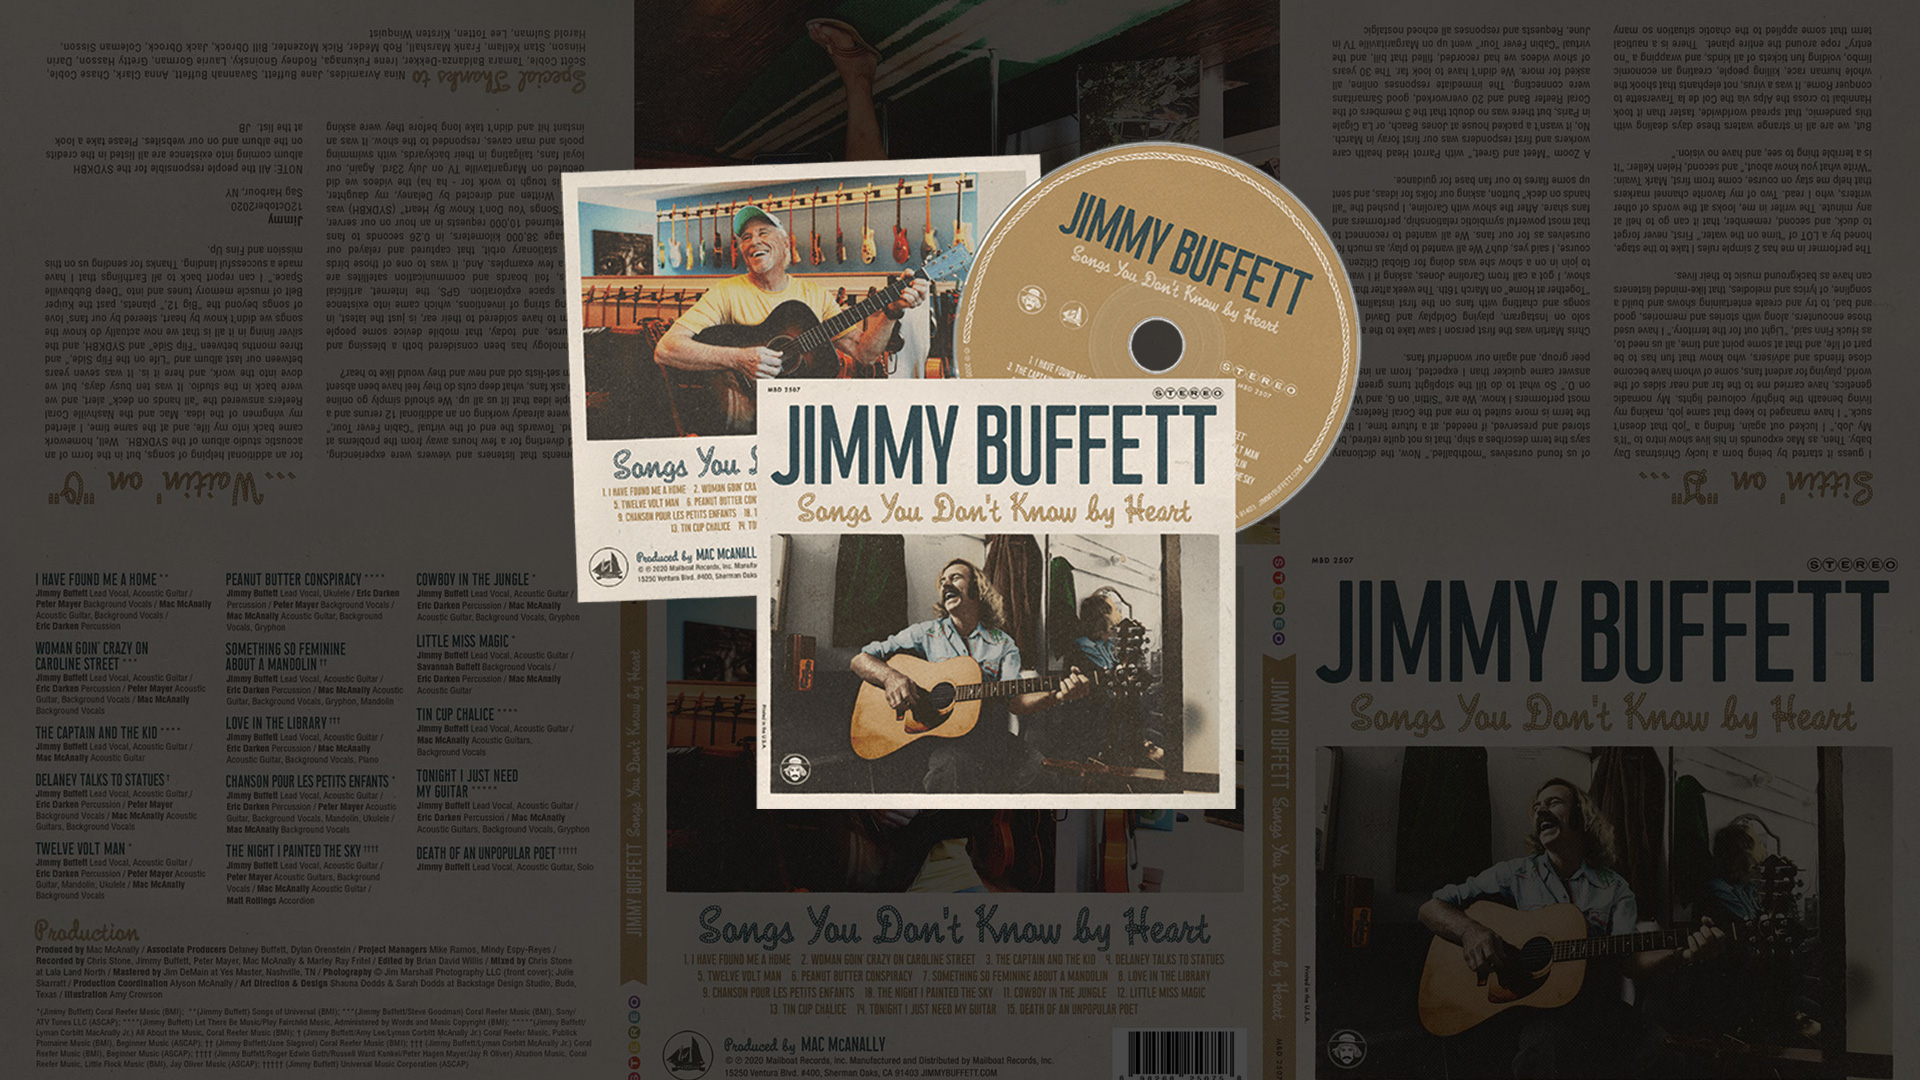 Songs You Don't Know By Heart The new CD by Jimmy Buffett is now available.